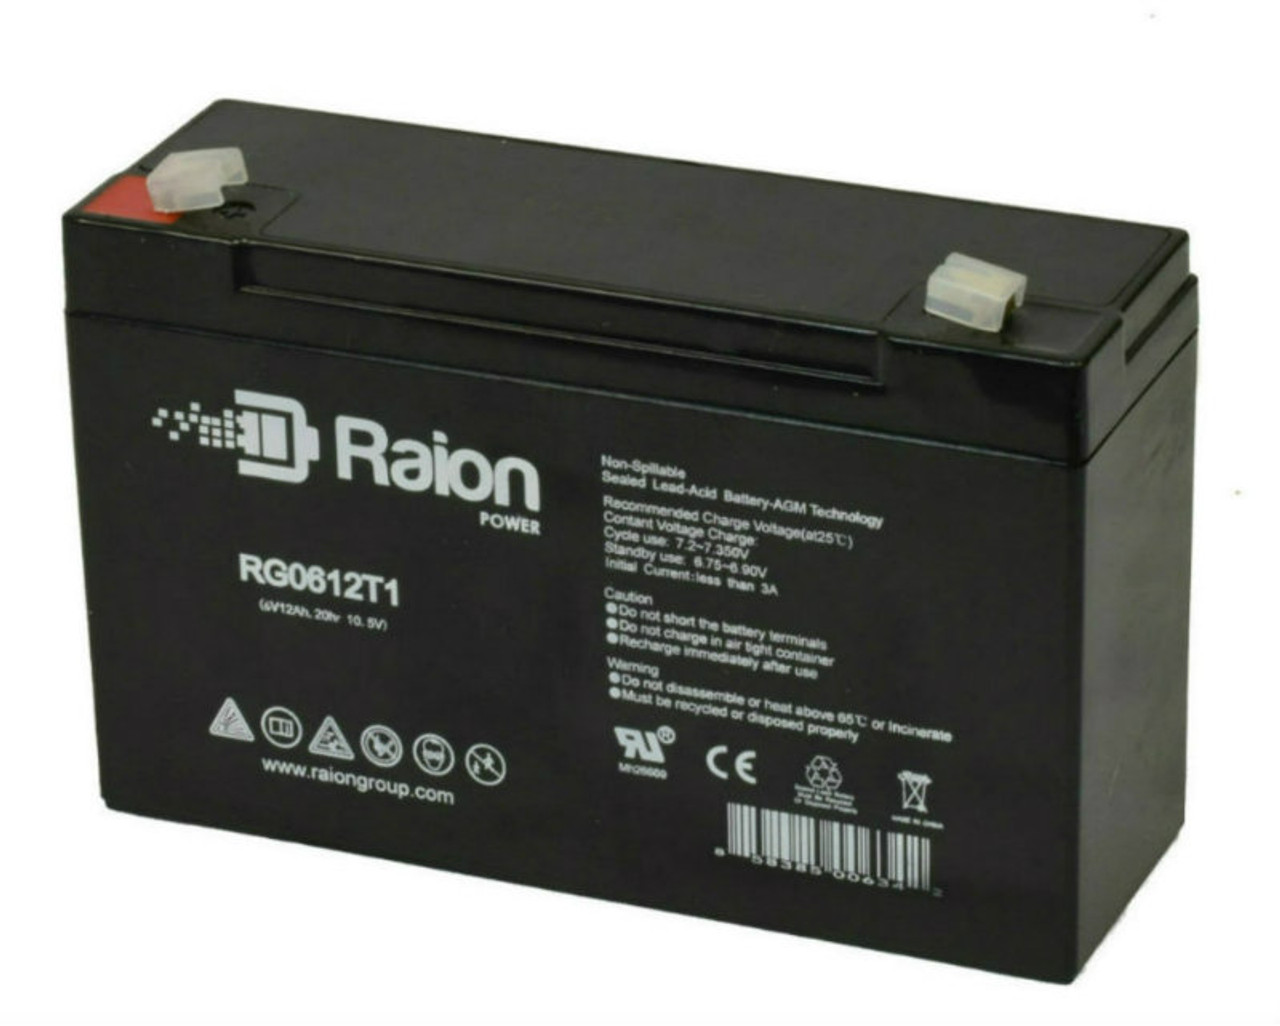 Raion Power RG06120T1 Replacement Battery Pack for Chloride CFM50 emergency light